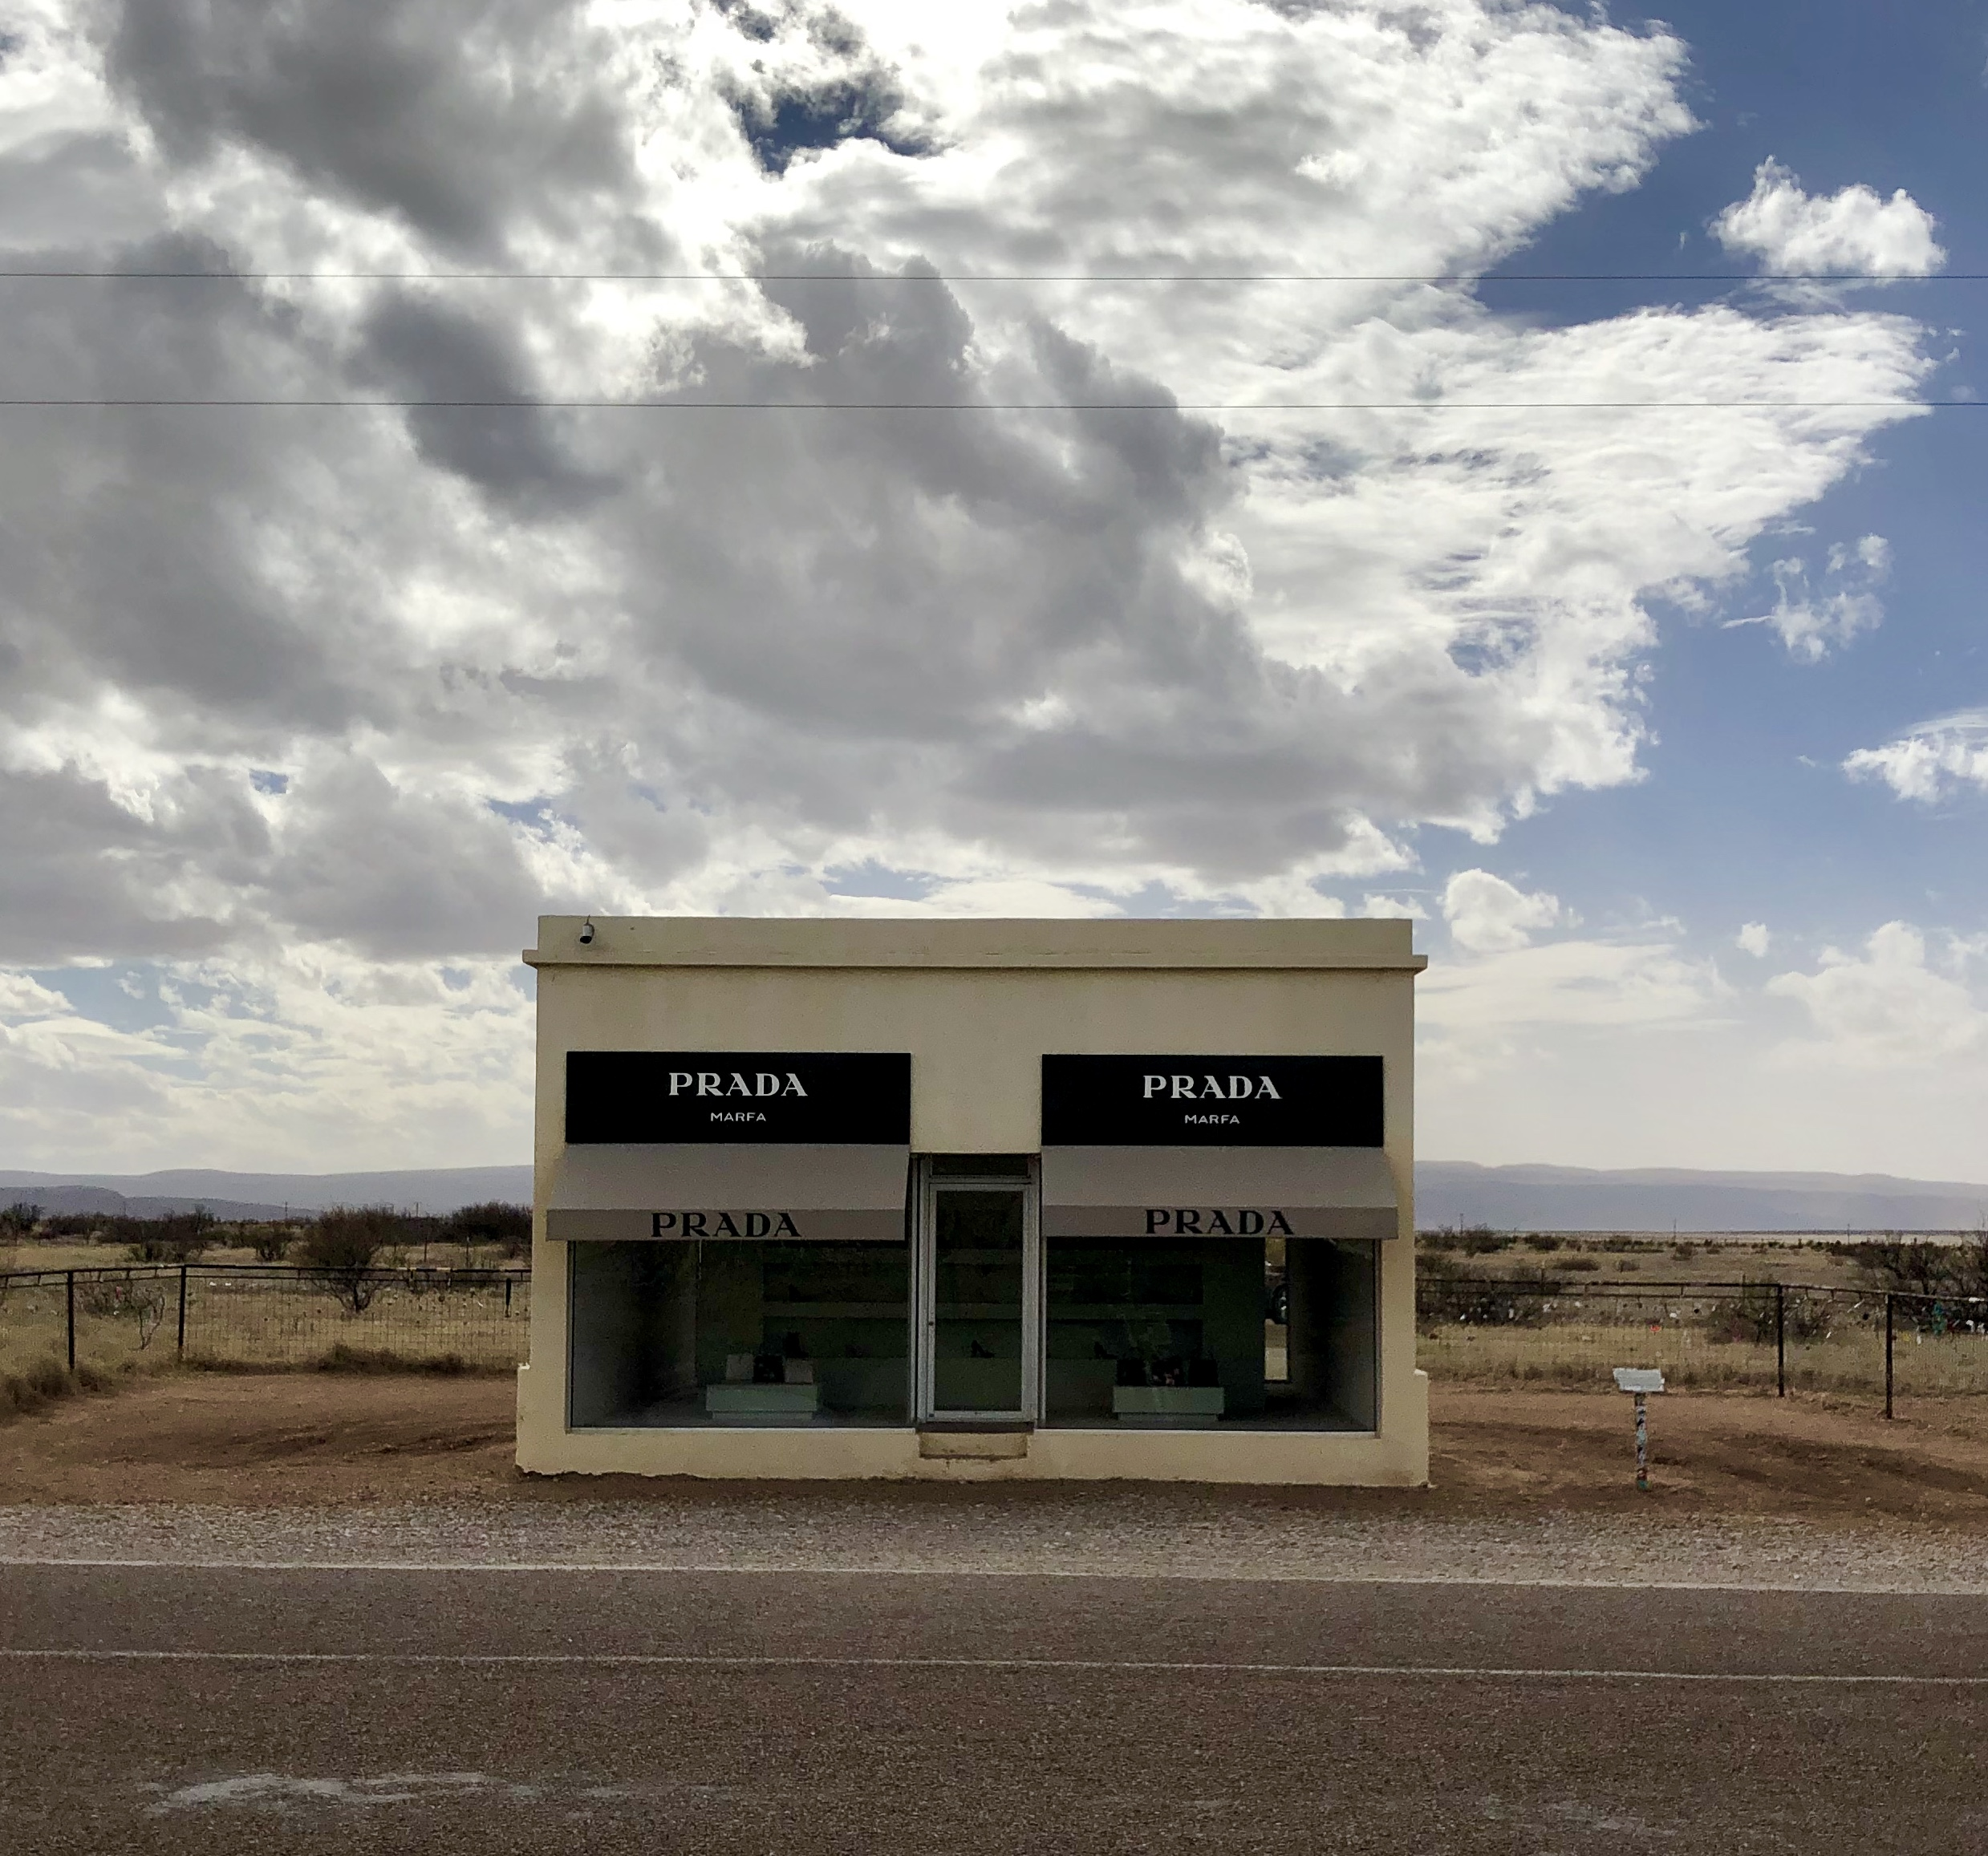 Elmgreen and Dragset, Prada Marfa, 2005